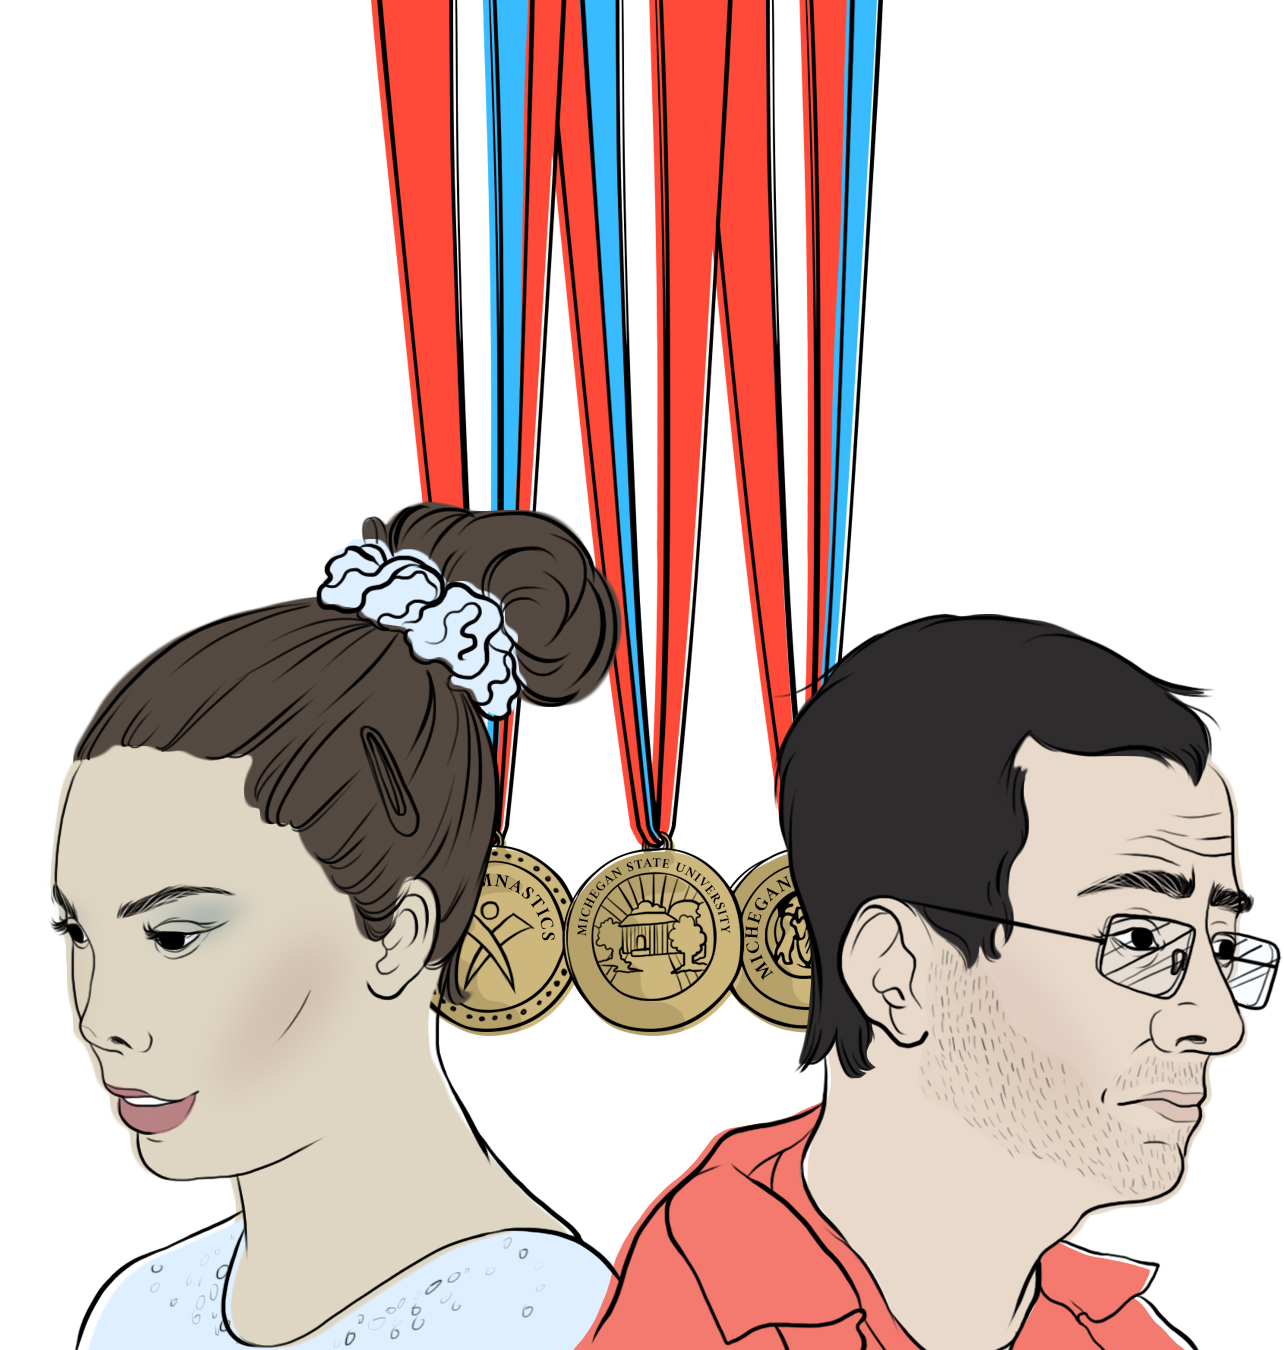 Deep Dive on: Larry Nassar - The Larry Nassar and USA Gymnastics sex abuse scandal is the largest sex abuse scandal in sports in the history of the USA, if not the world. In early 2018, disgraced former USA Gymnastics and Michigan State doctor, Nassar, was sentenced to up to 175 years in prison for sexually abusing over 300 female athletes and at least one male athlete..... read more here